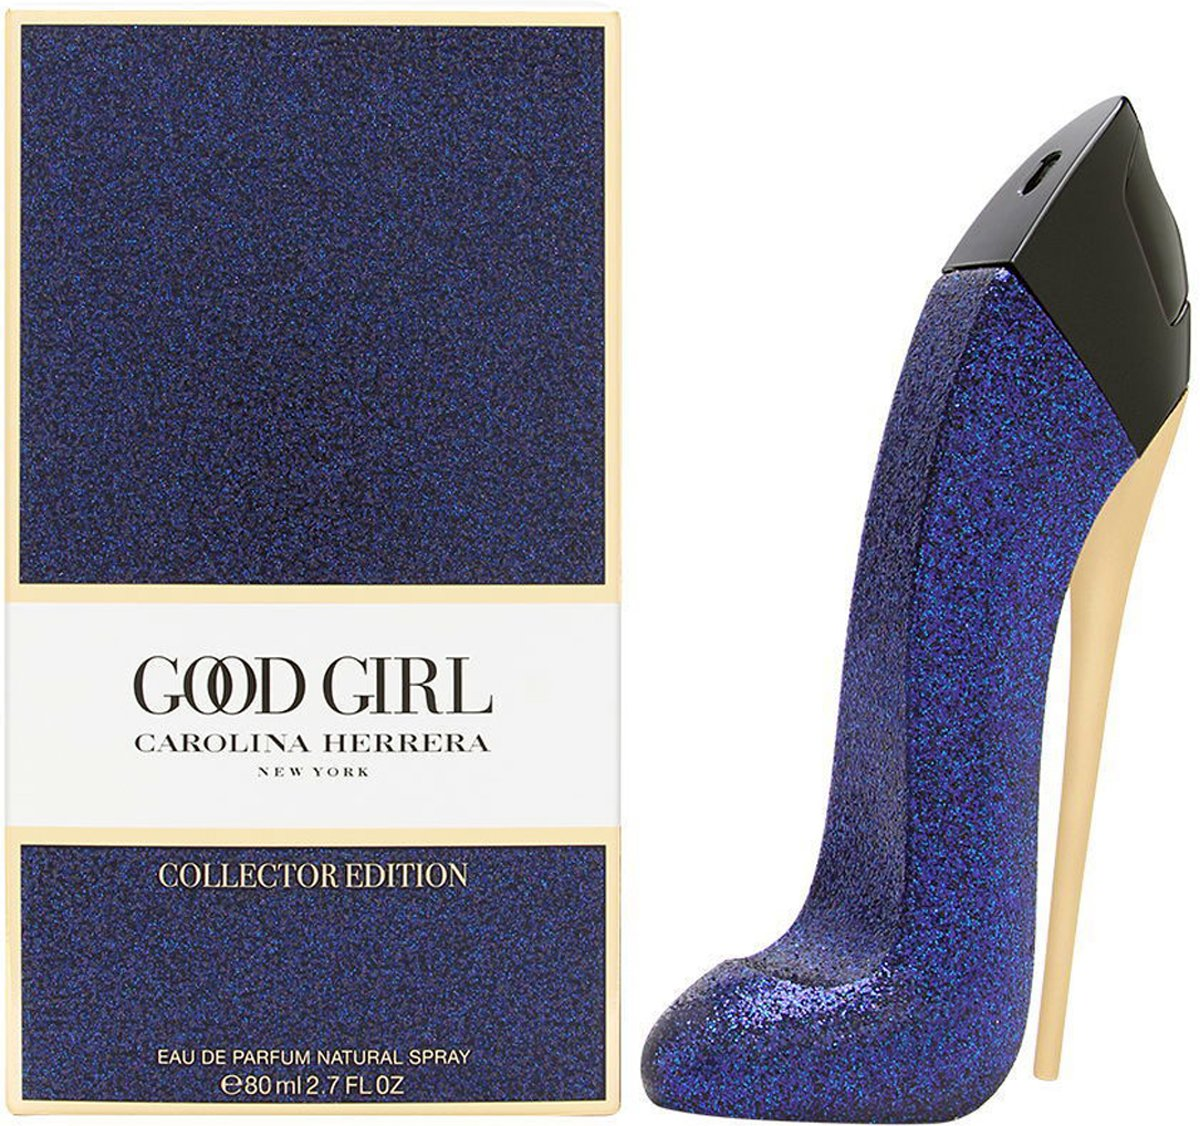 Carolina Herrera Good Girl 80ml EDP Spray Glitter Collection